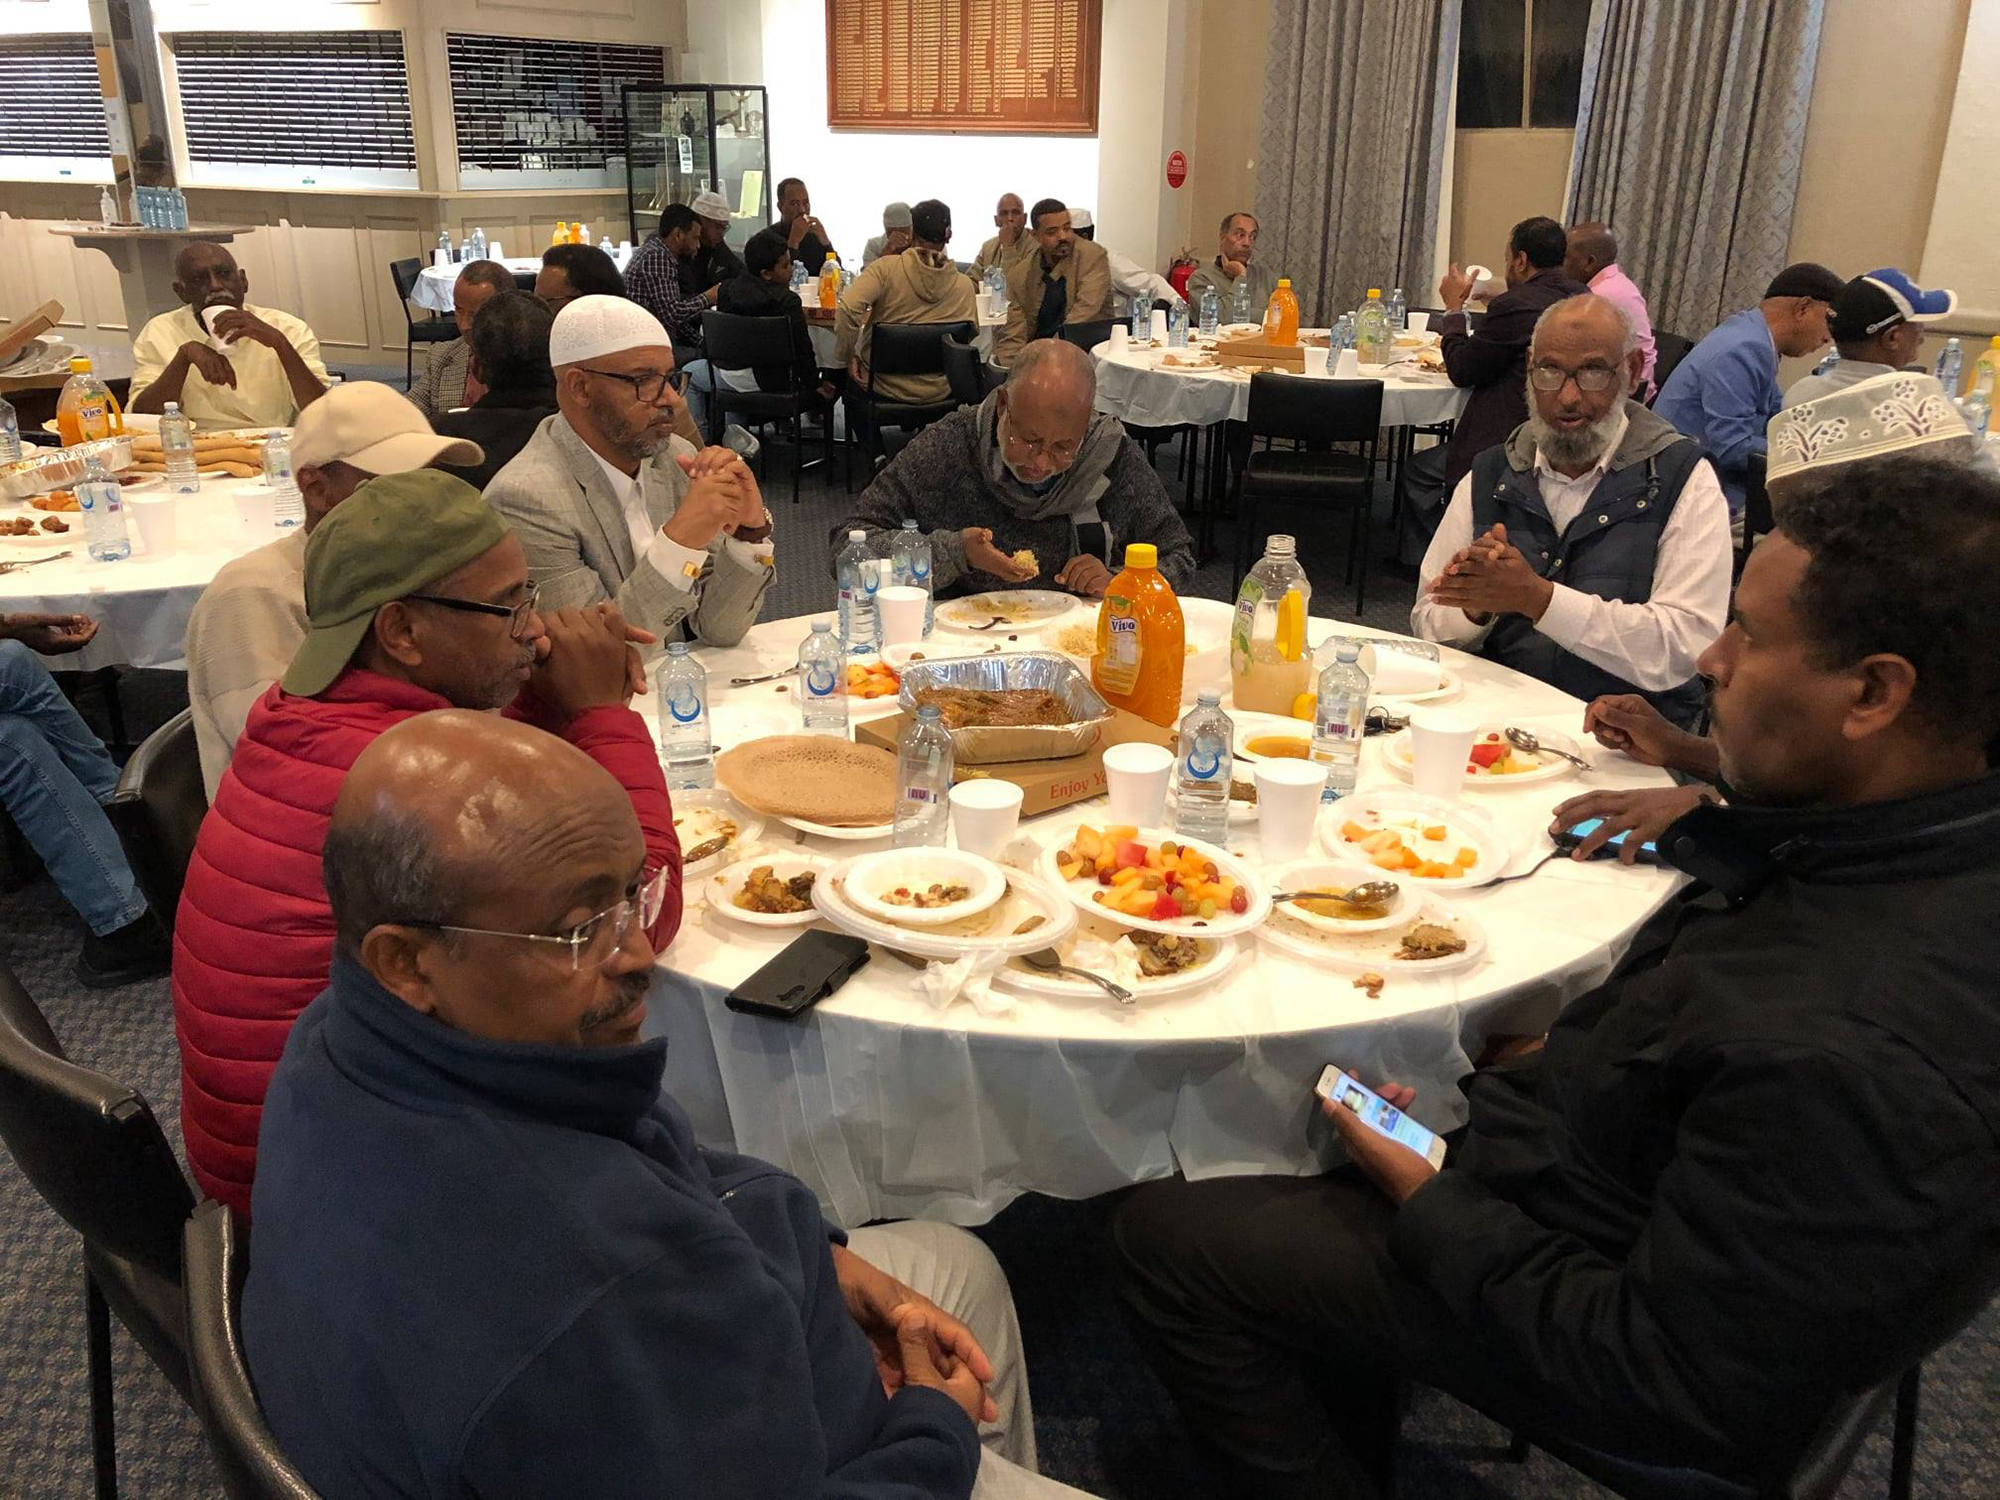 Members of the Eritrean community coming together during Ramadan in Melbourne, Australia, to break fast 6